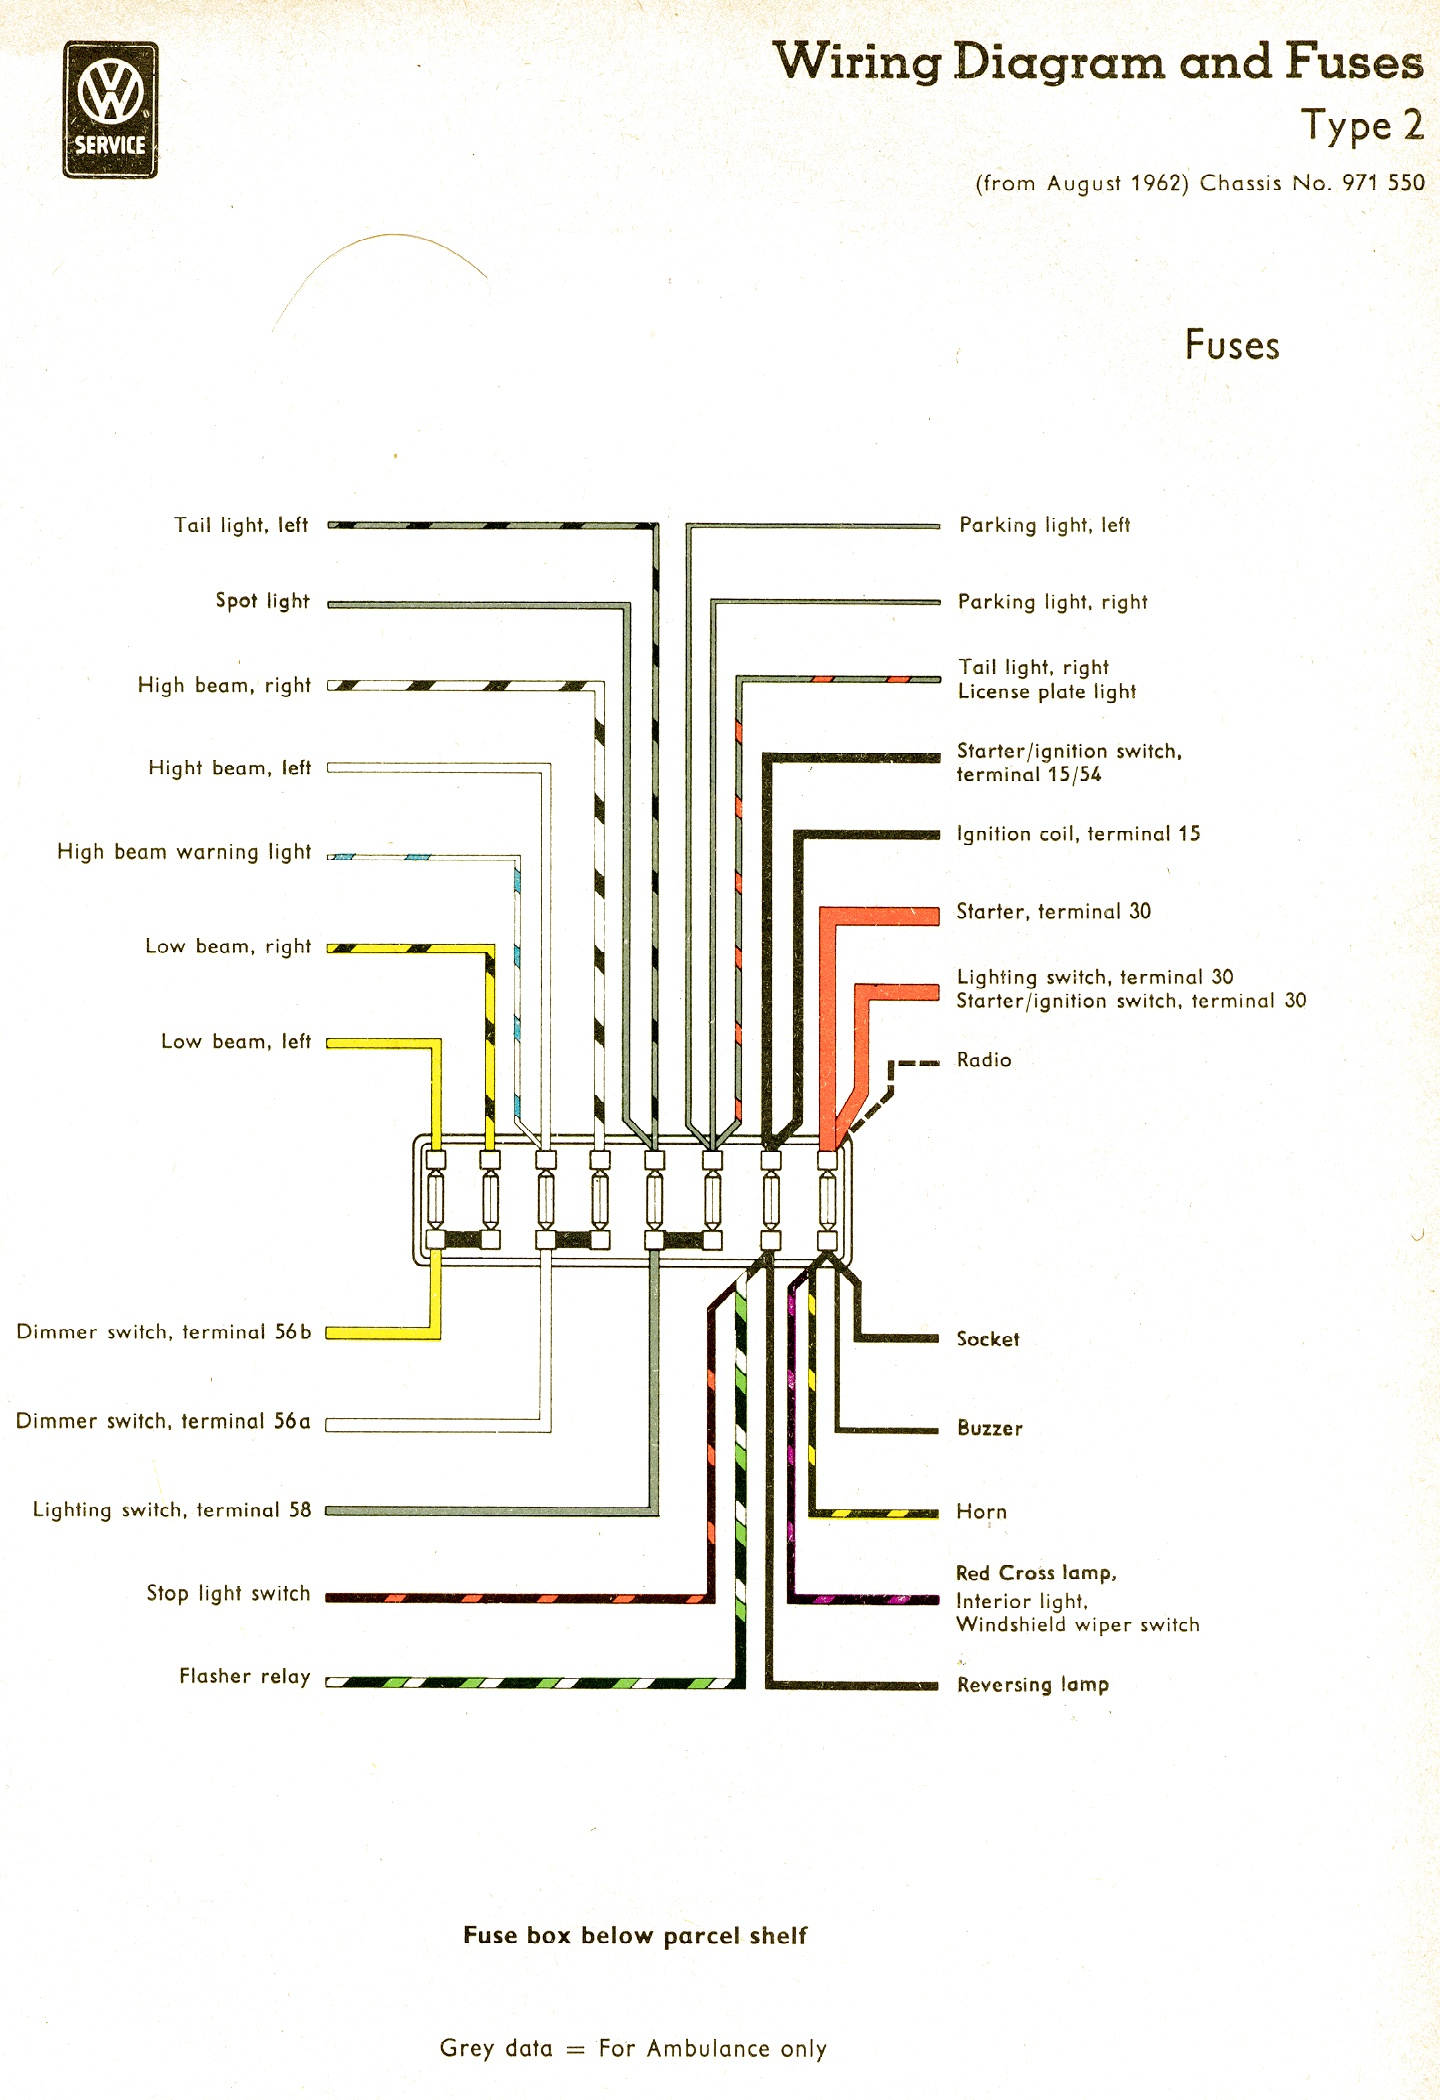 bus 62 fuse vw wiring diagrams fuse box diagram for 1977 chevy c10 at bayanpartner.co